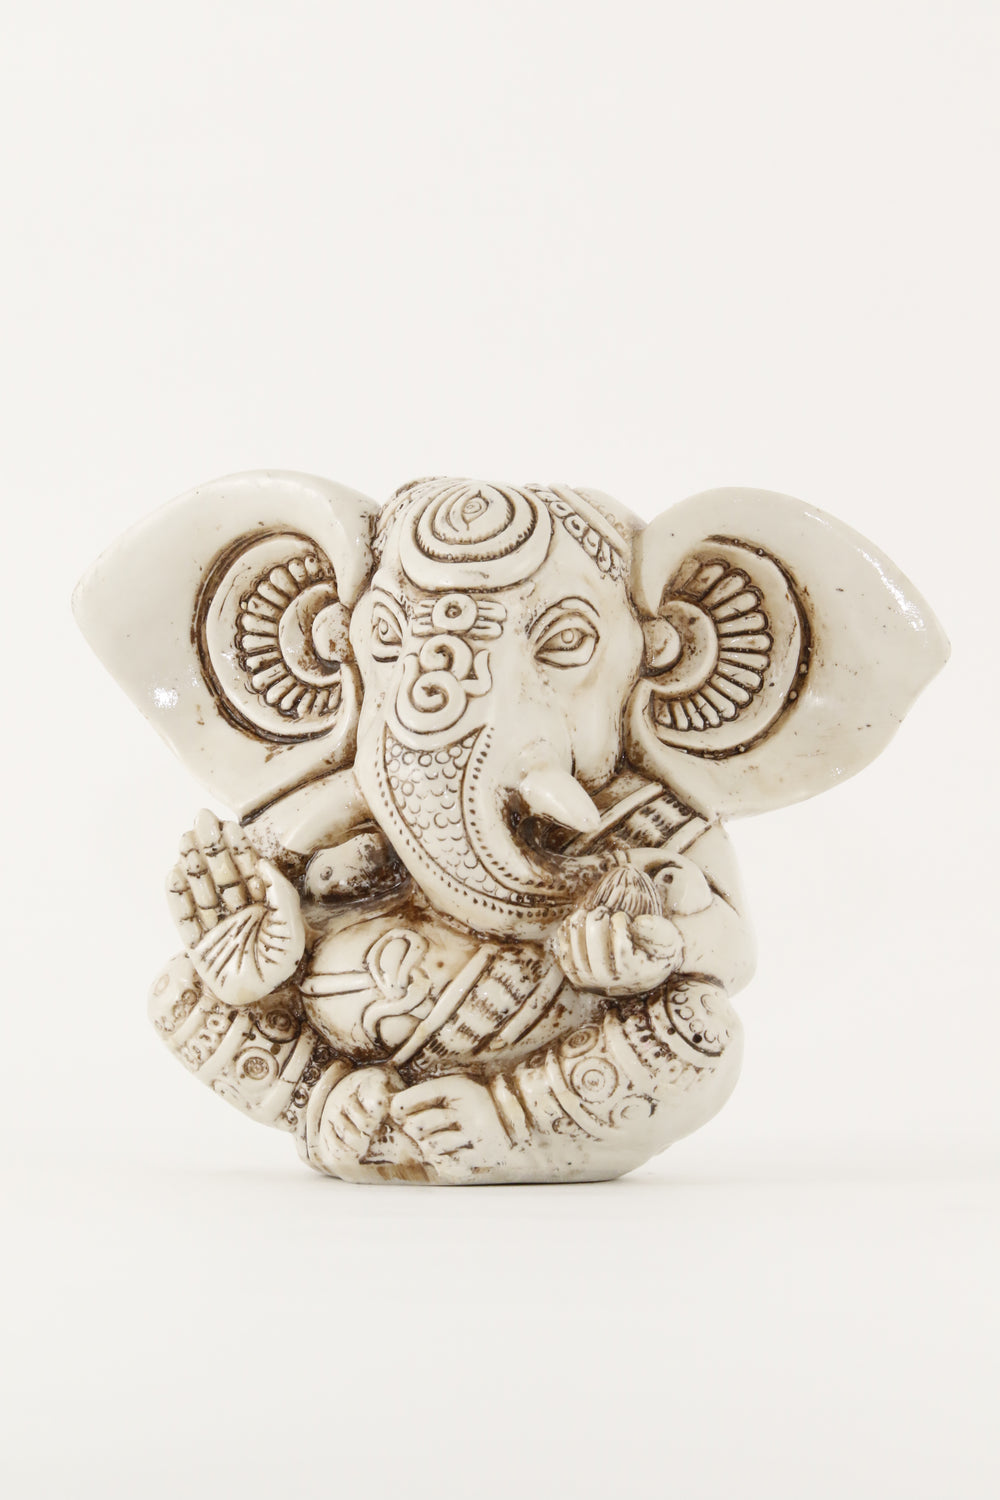 GANESHA BIG EAR STATUE OFFWHITE LARGE SIZE FRONT VIEW